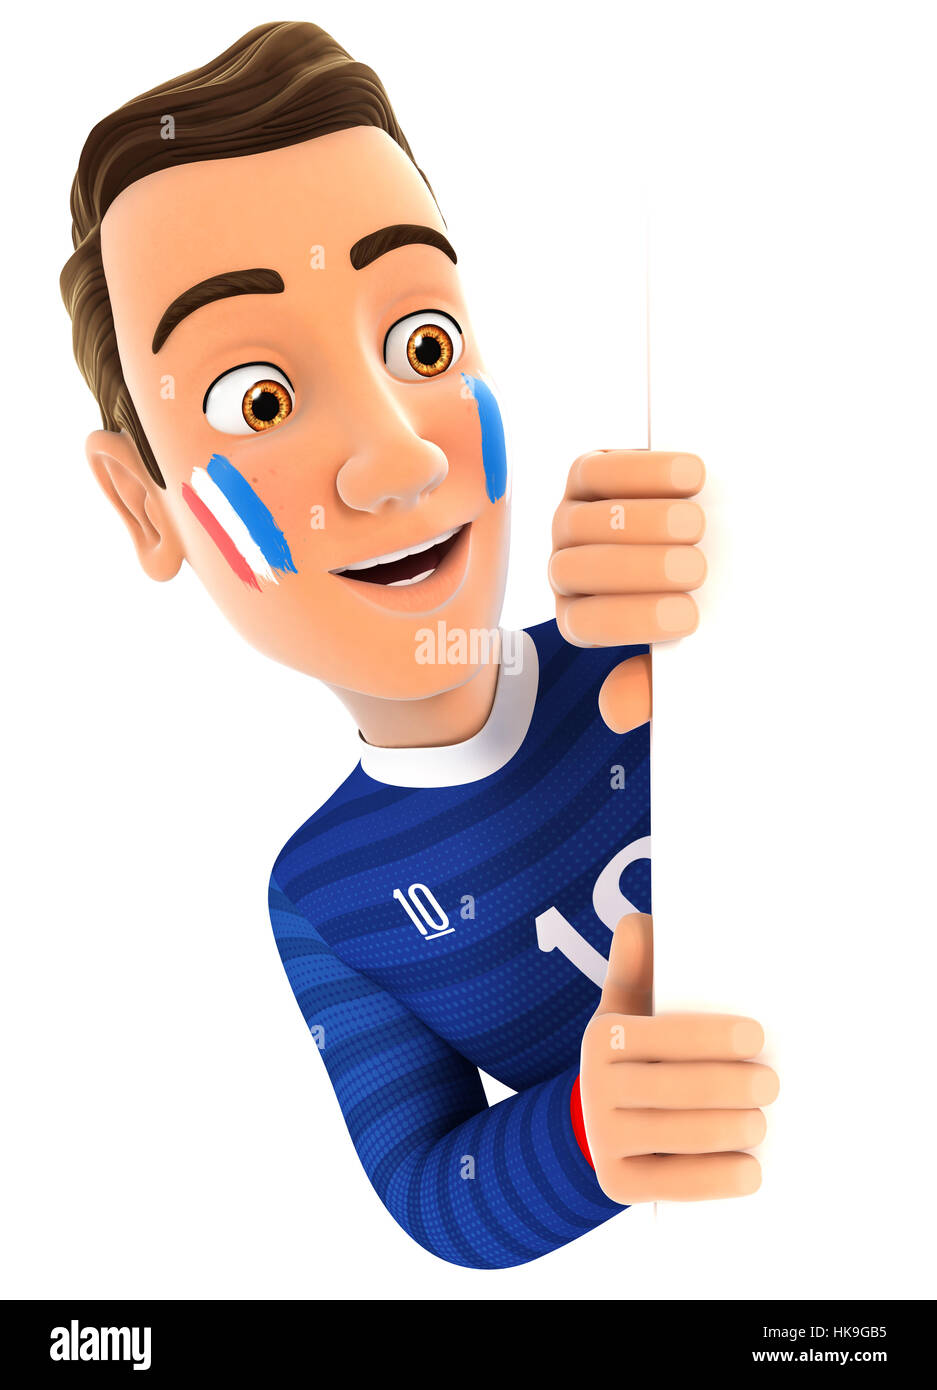 3d french soccer fan peeping over blank wall, illustration with isolated white background Stock Photo